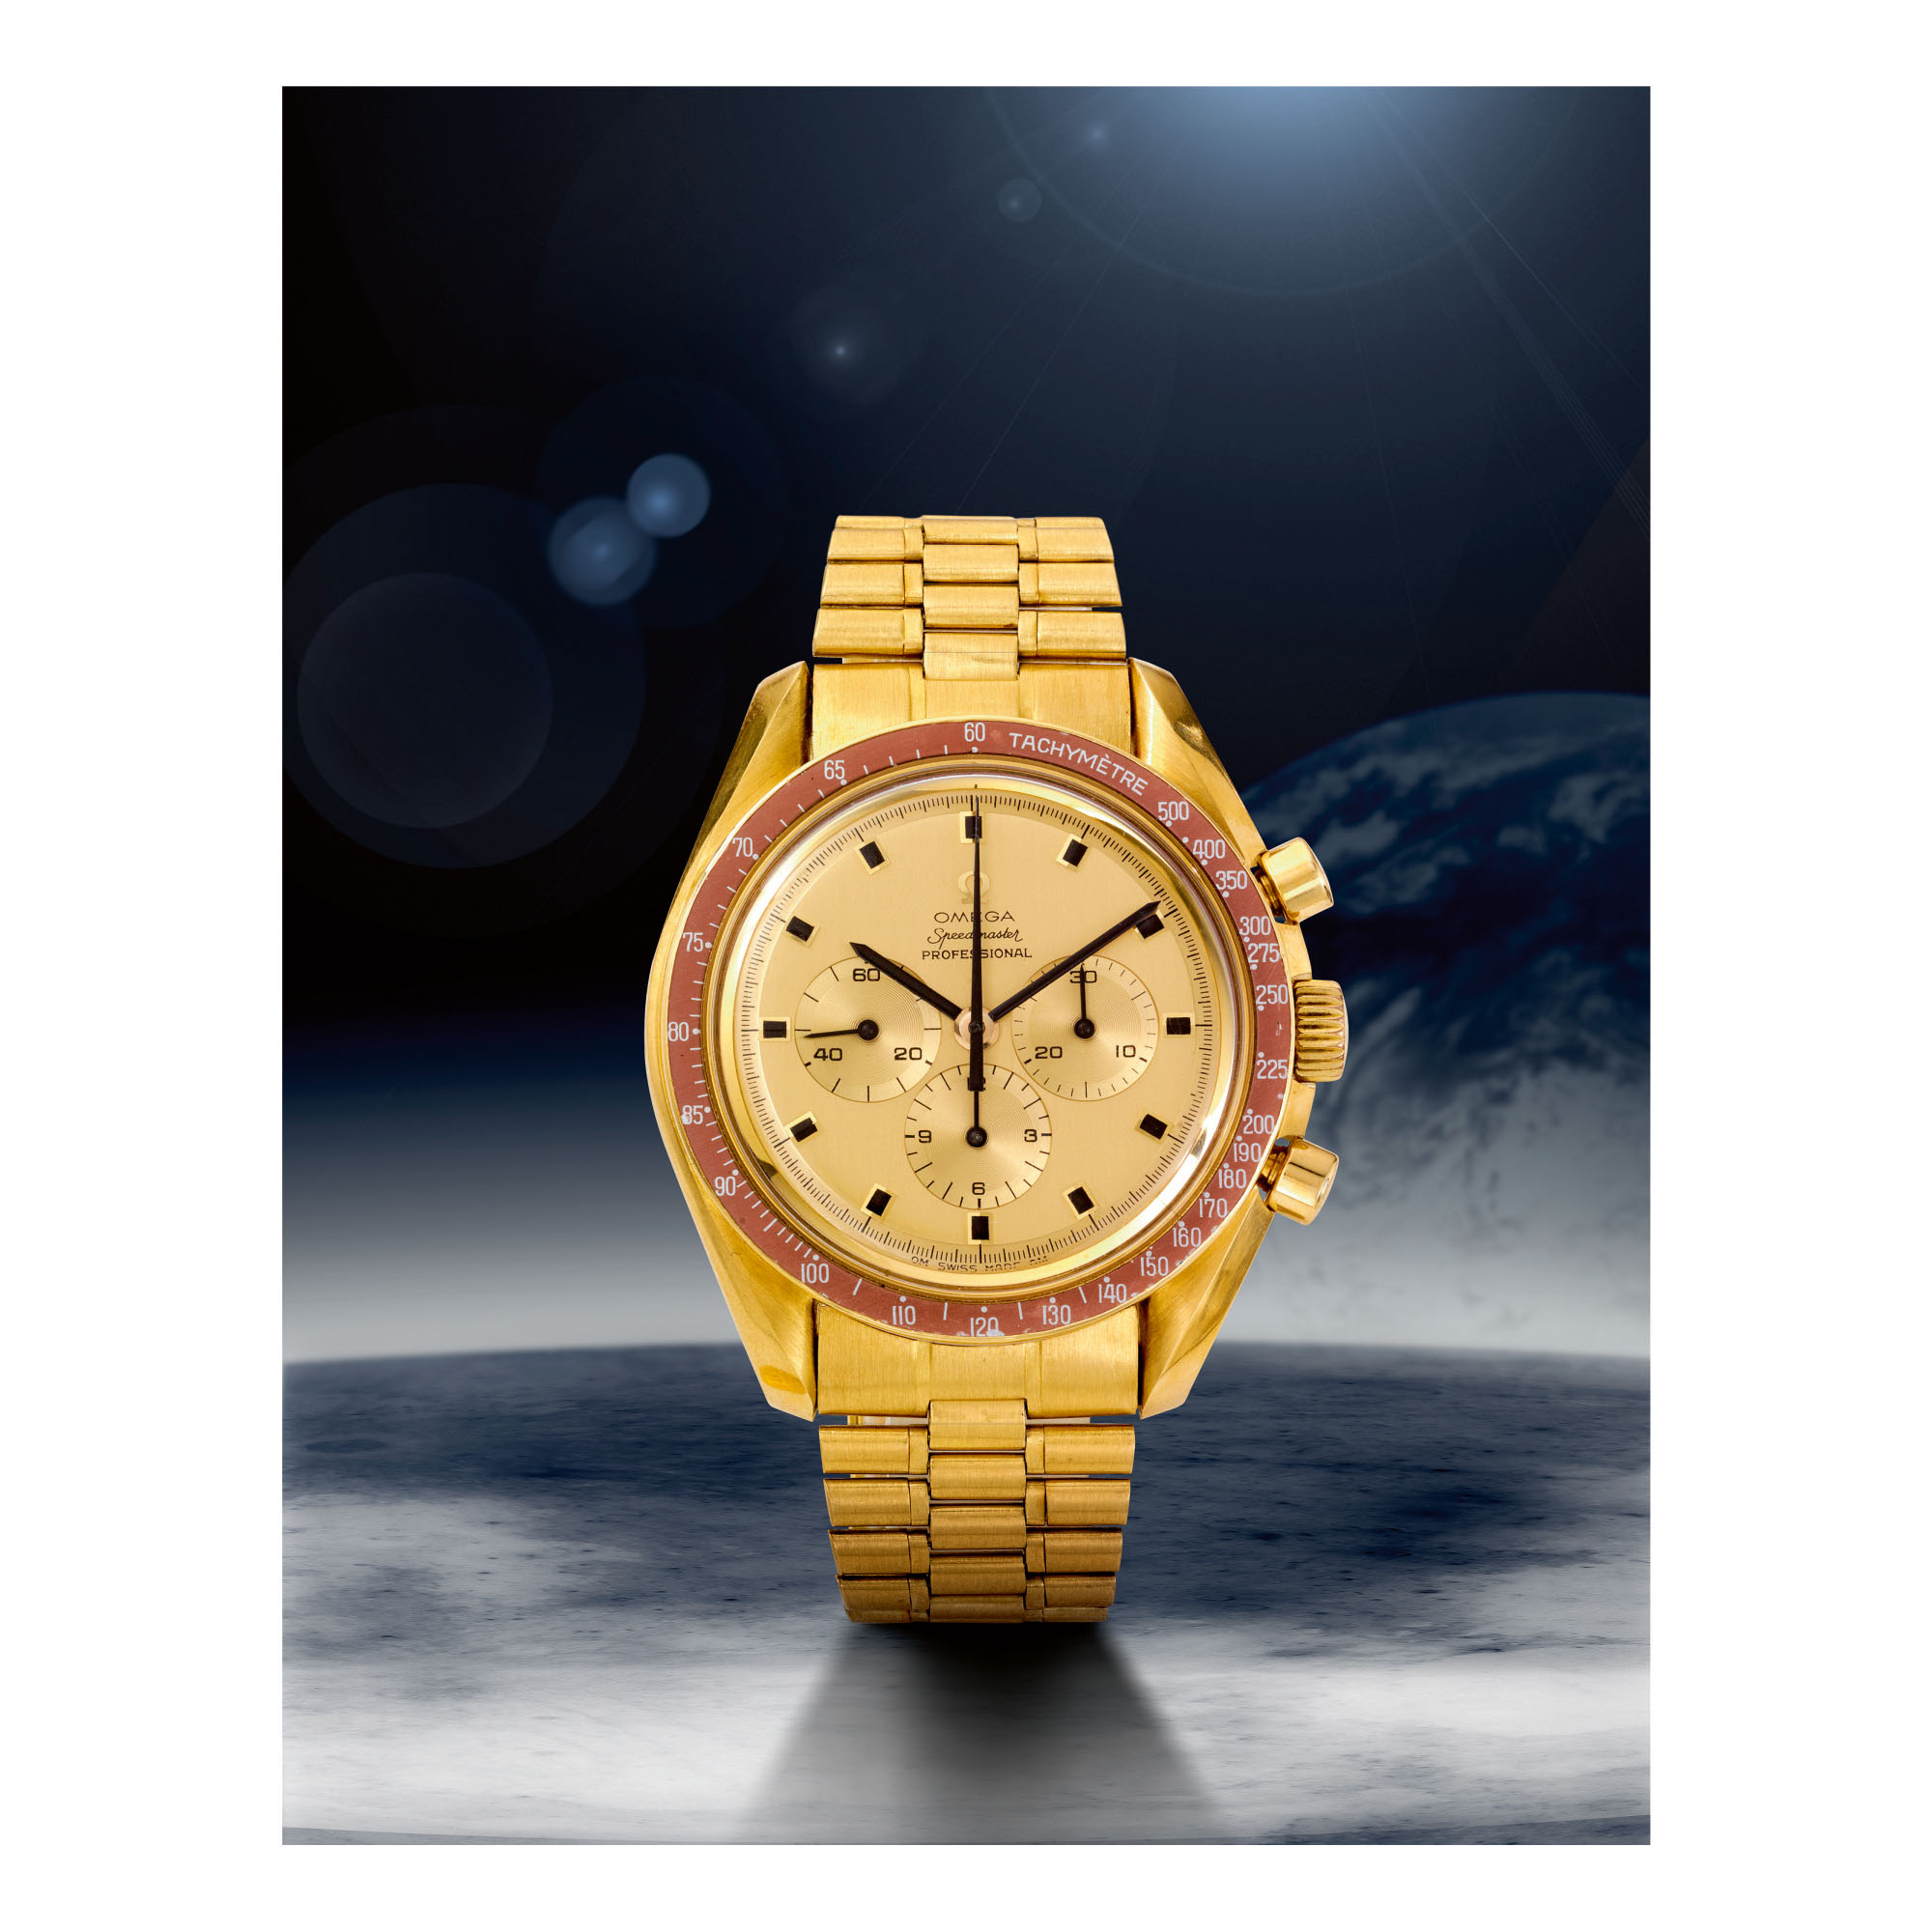 OMEGA | SPEEDMASTER REF 145.022-69 'APOLLO XI 1969',  A YELLOW GOLD CHRONOGRAPH WRISTWATCH WITH BRACELET, MADE IN 1969